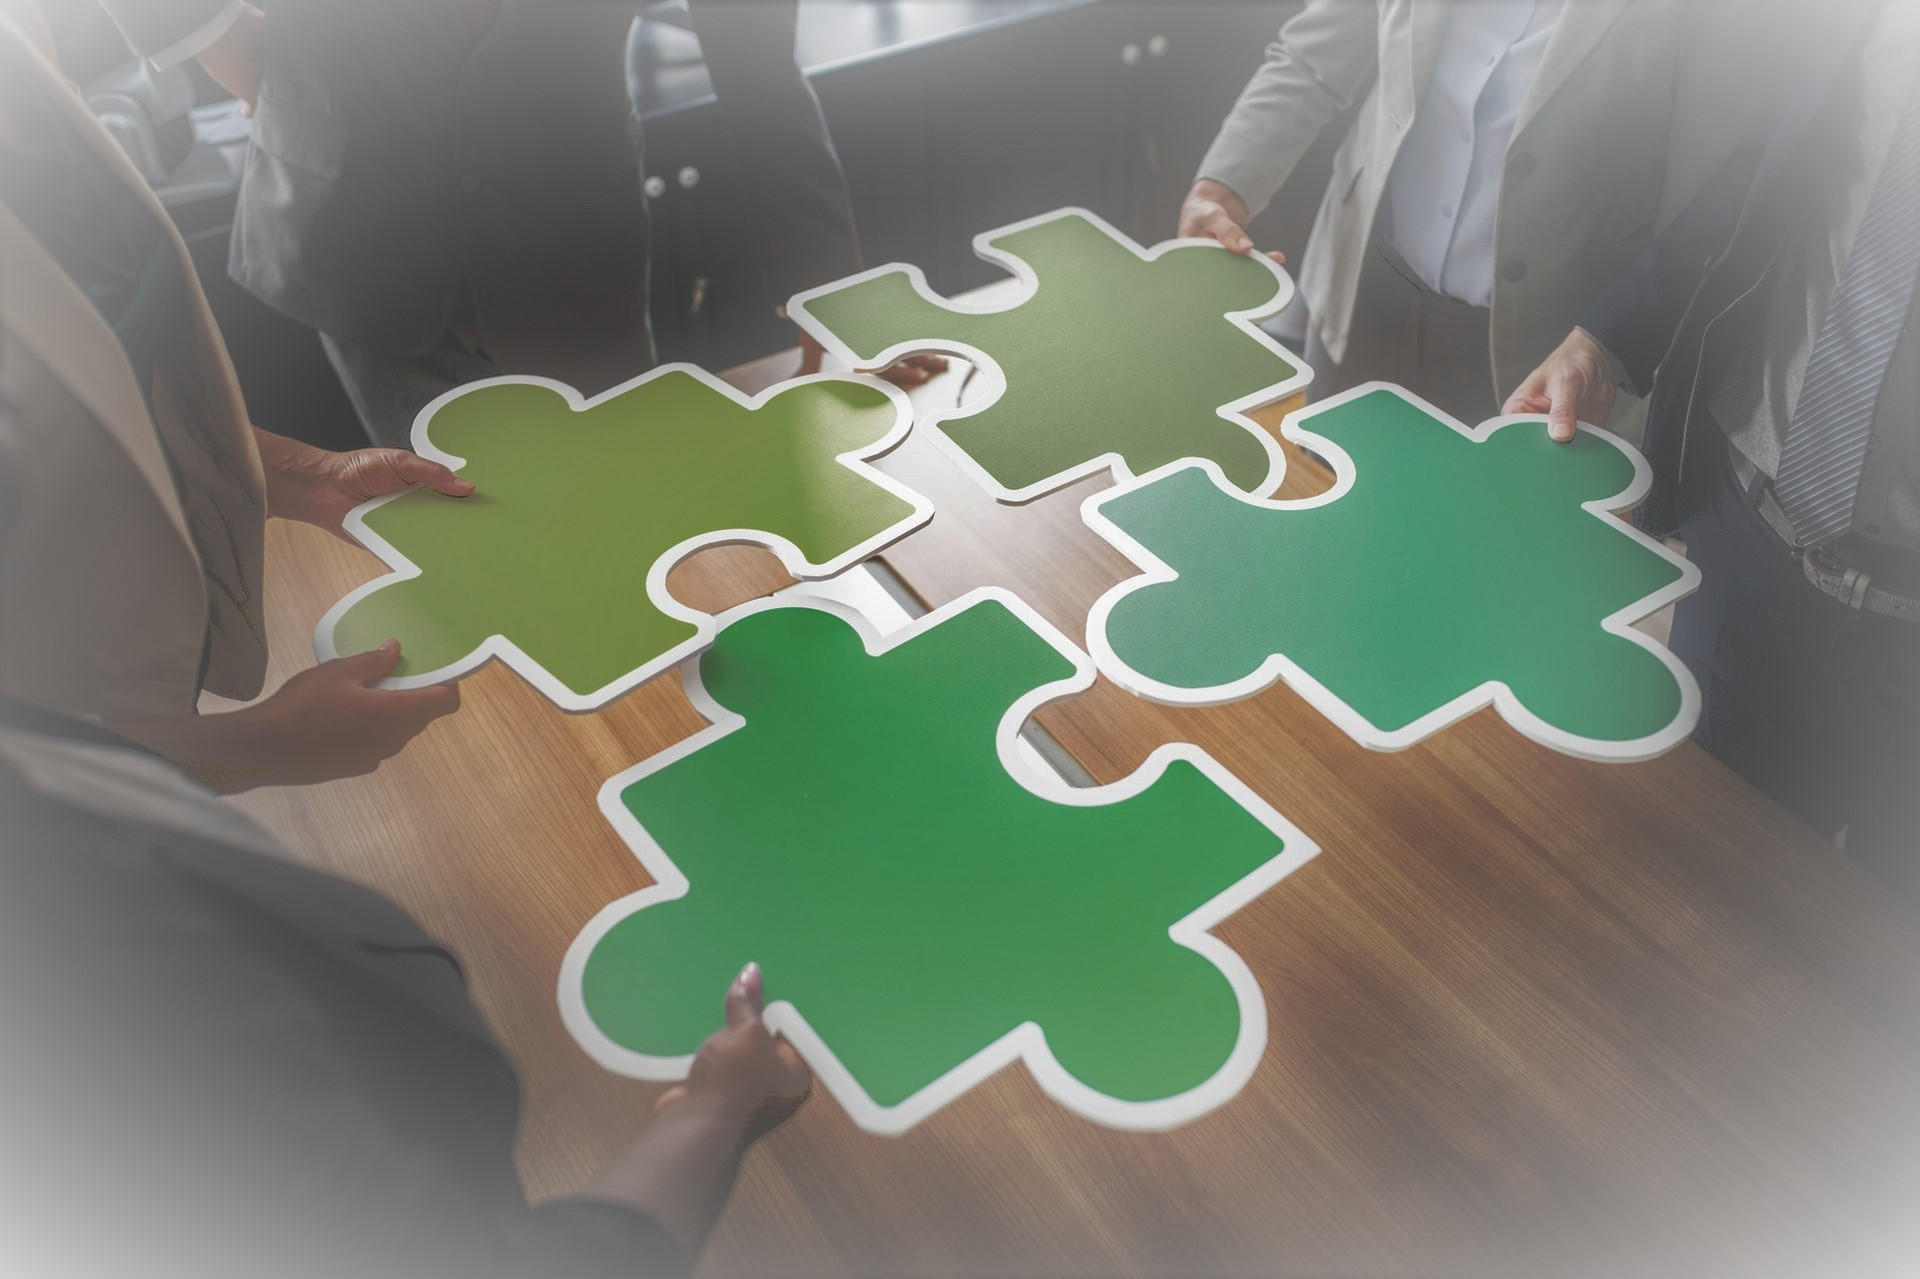 4 people standing around a table each holding a huge jigsaw piece